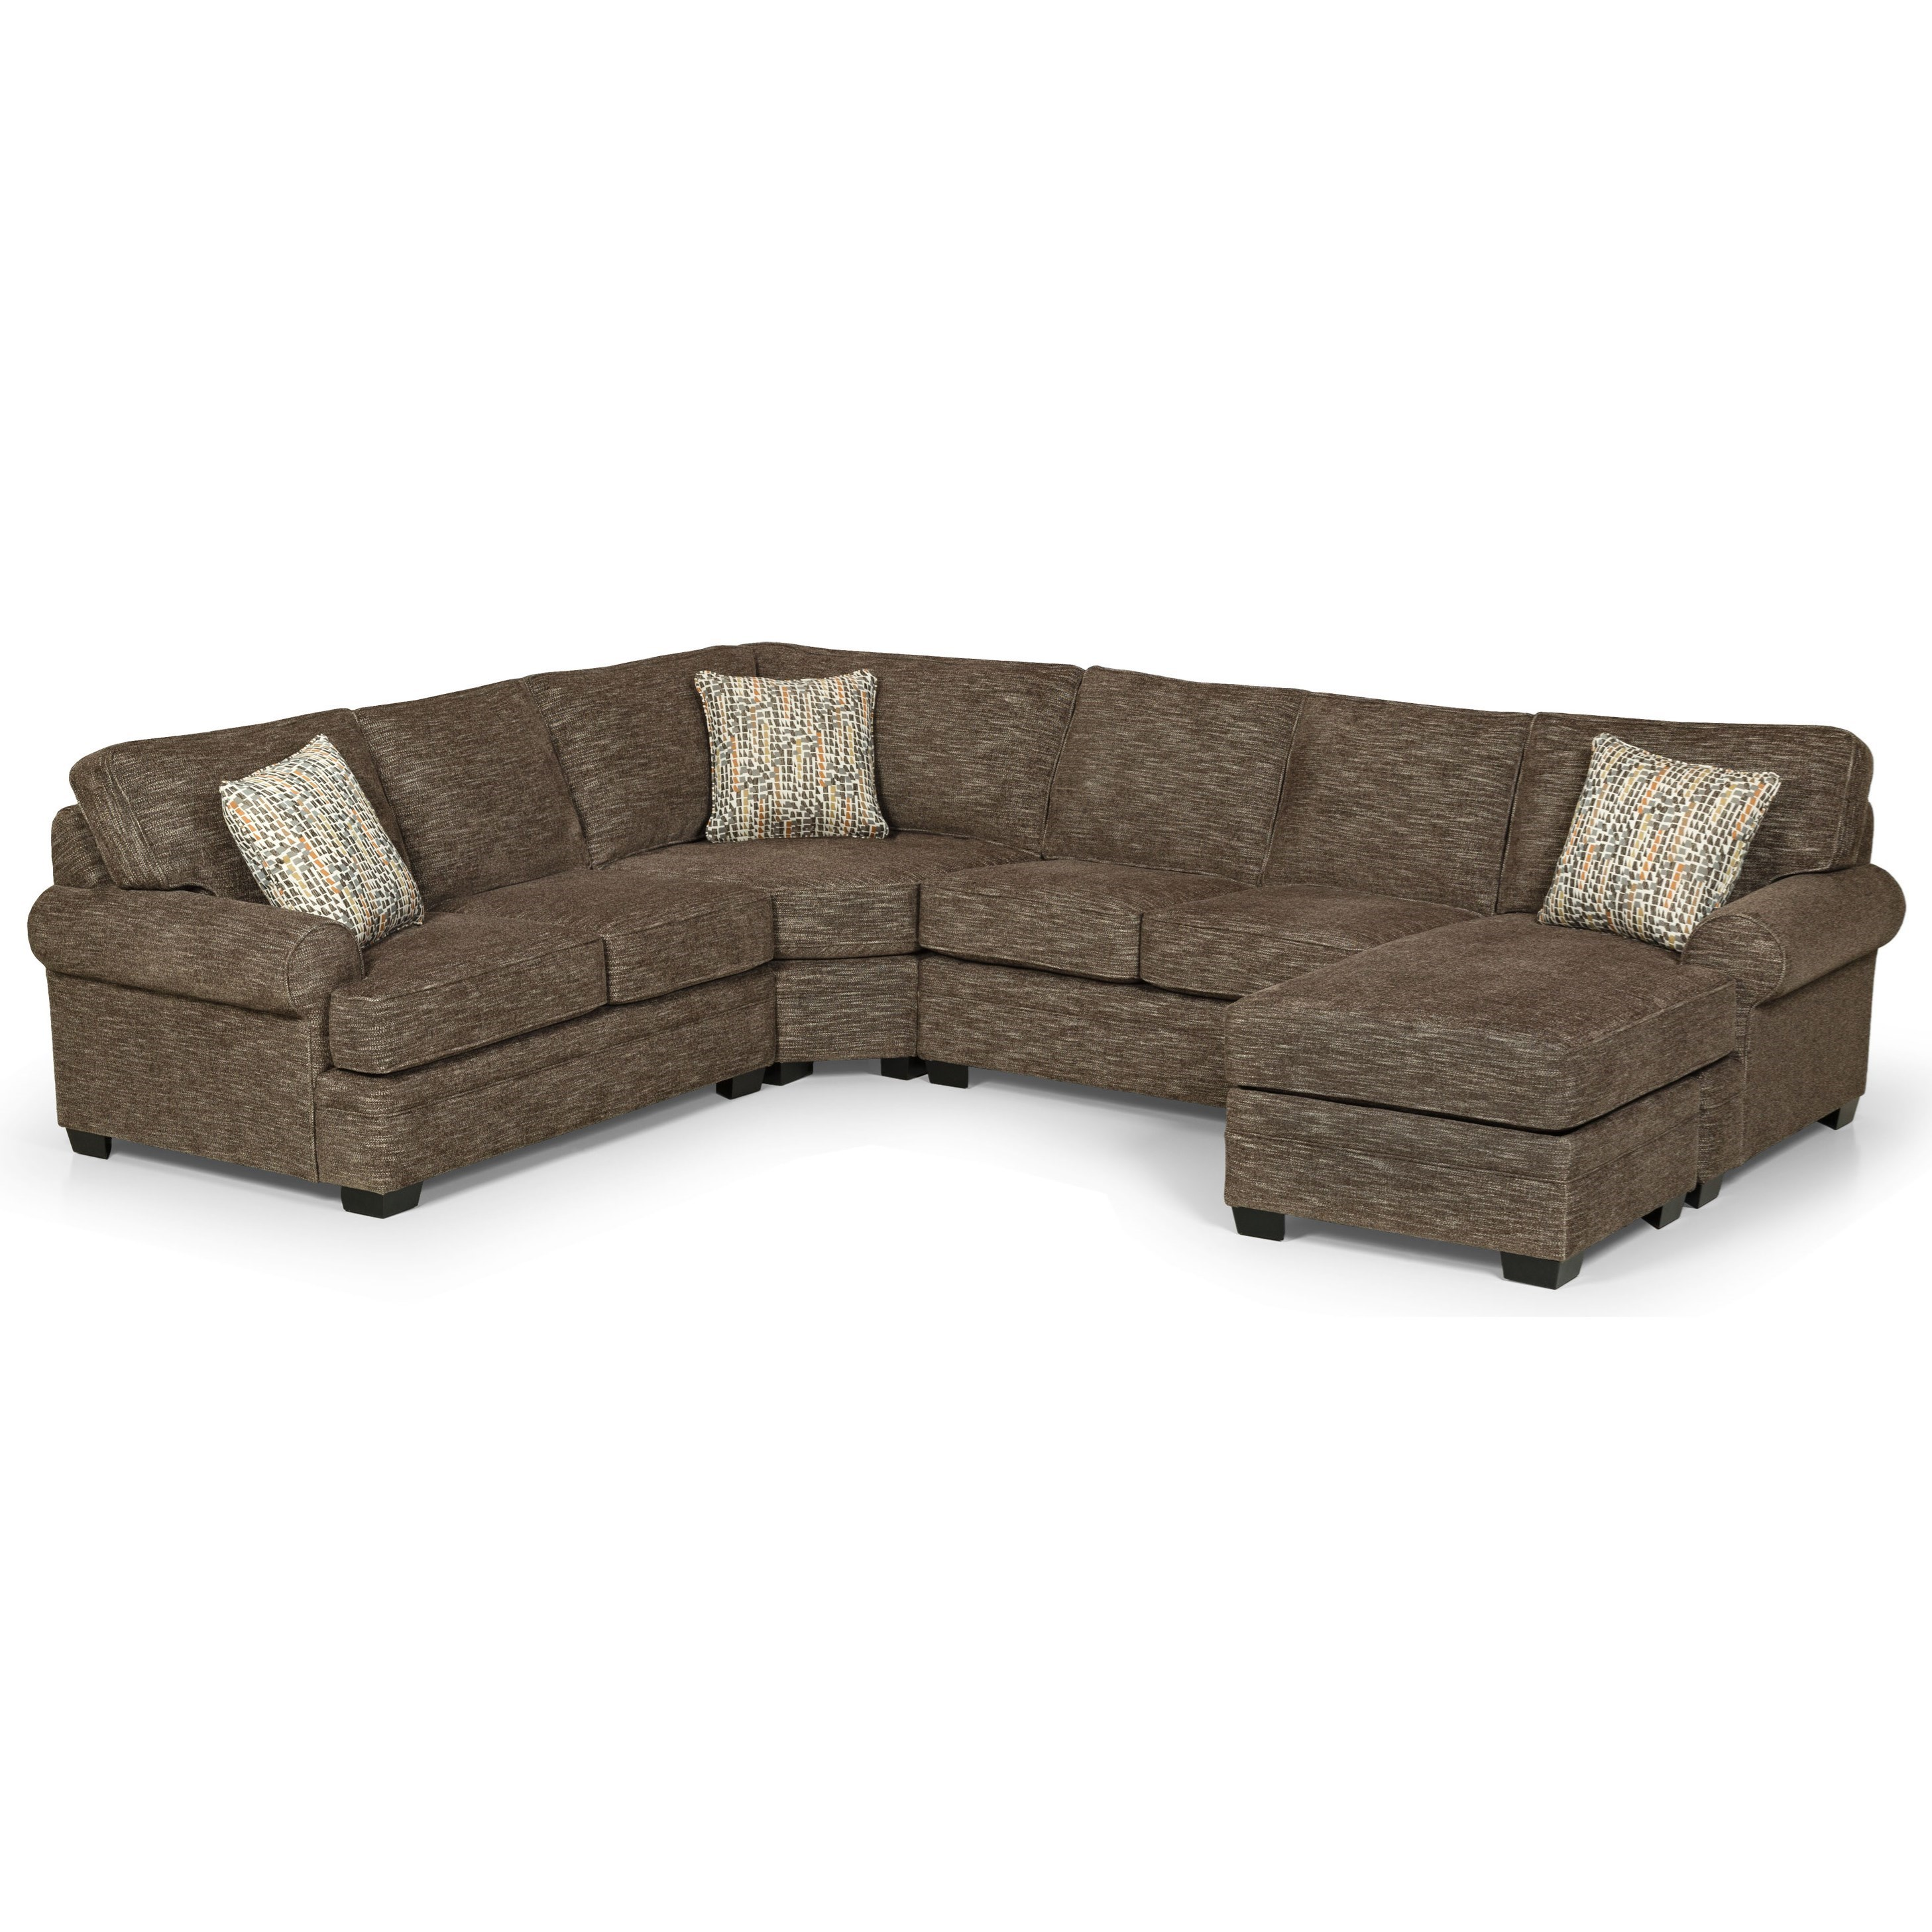 422 5 Seat Sectional Sofa by Sunset Home at Sadler's Home Furnishings